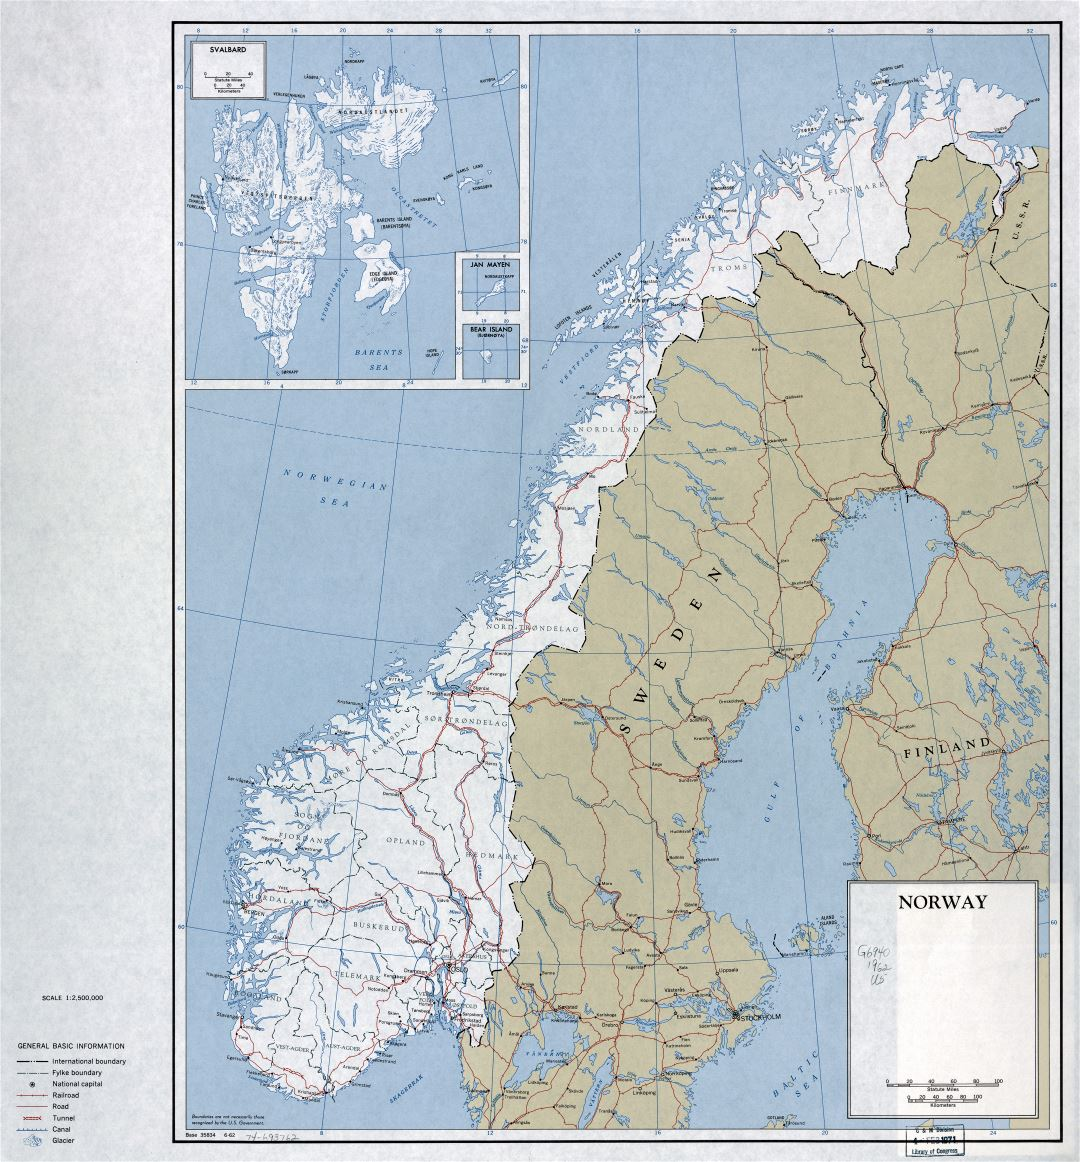 Large scale political and administrative map of Norway with roads, railroads and major cities - 1962